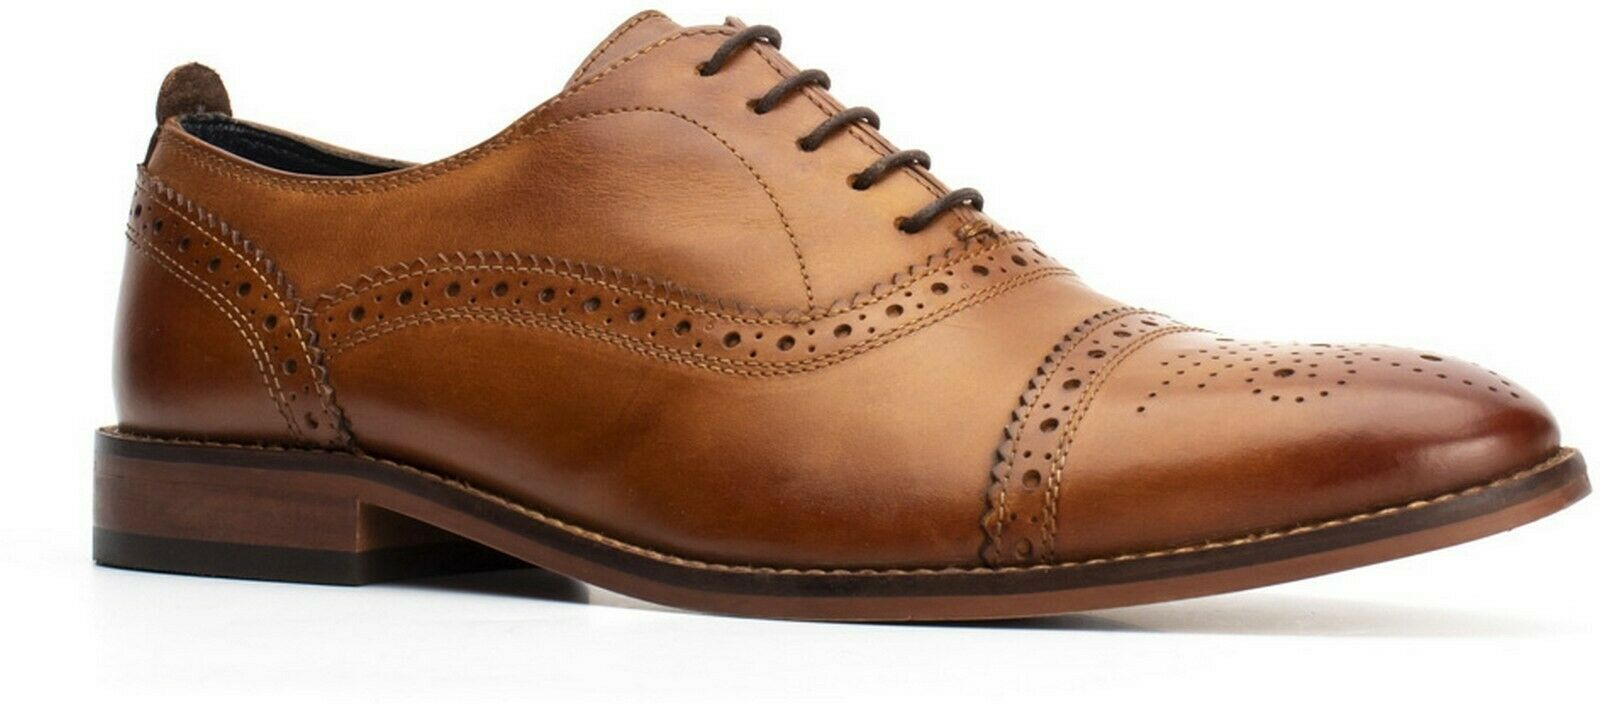 Base London Cast tan washed leather lace up formal oxford brogue schuhe